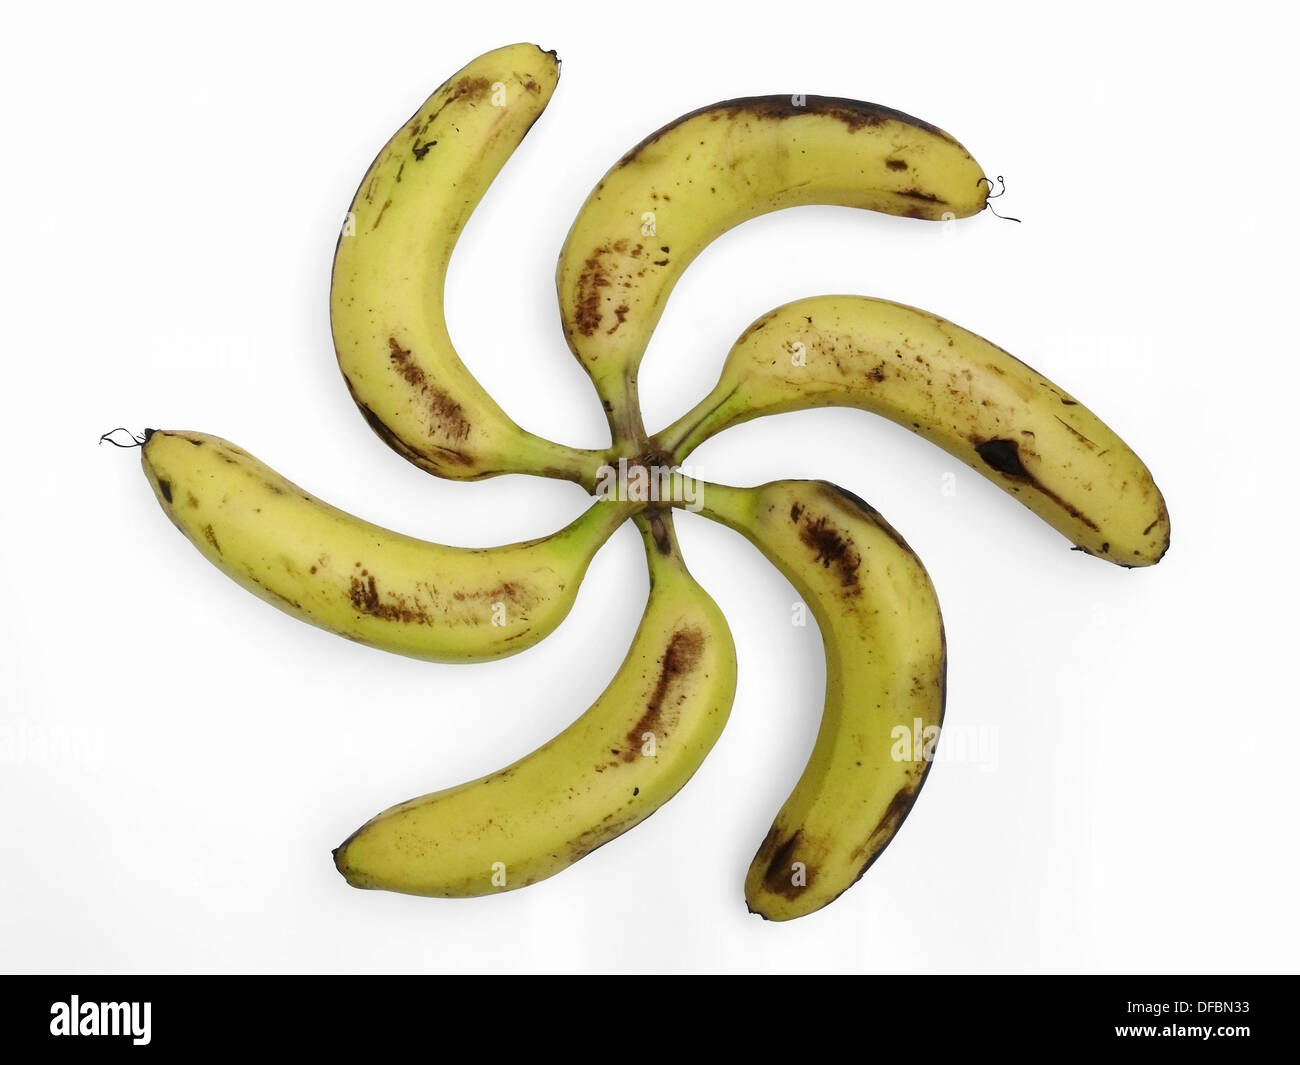 Bananas are arranged in floral pattern  Musa X paradisiaca L  Family: Musaceae  Pune, Maharashtra, India - Stock Image